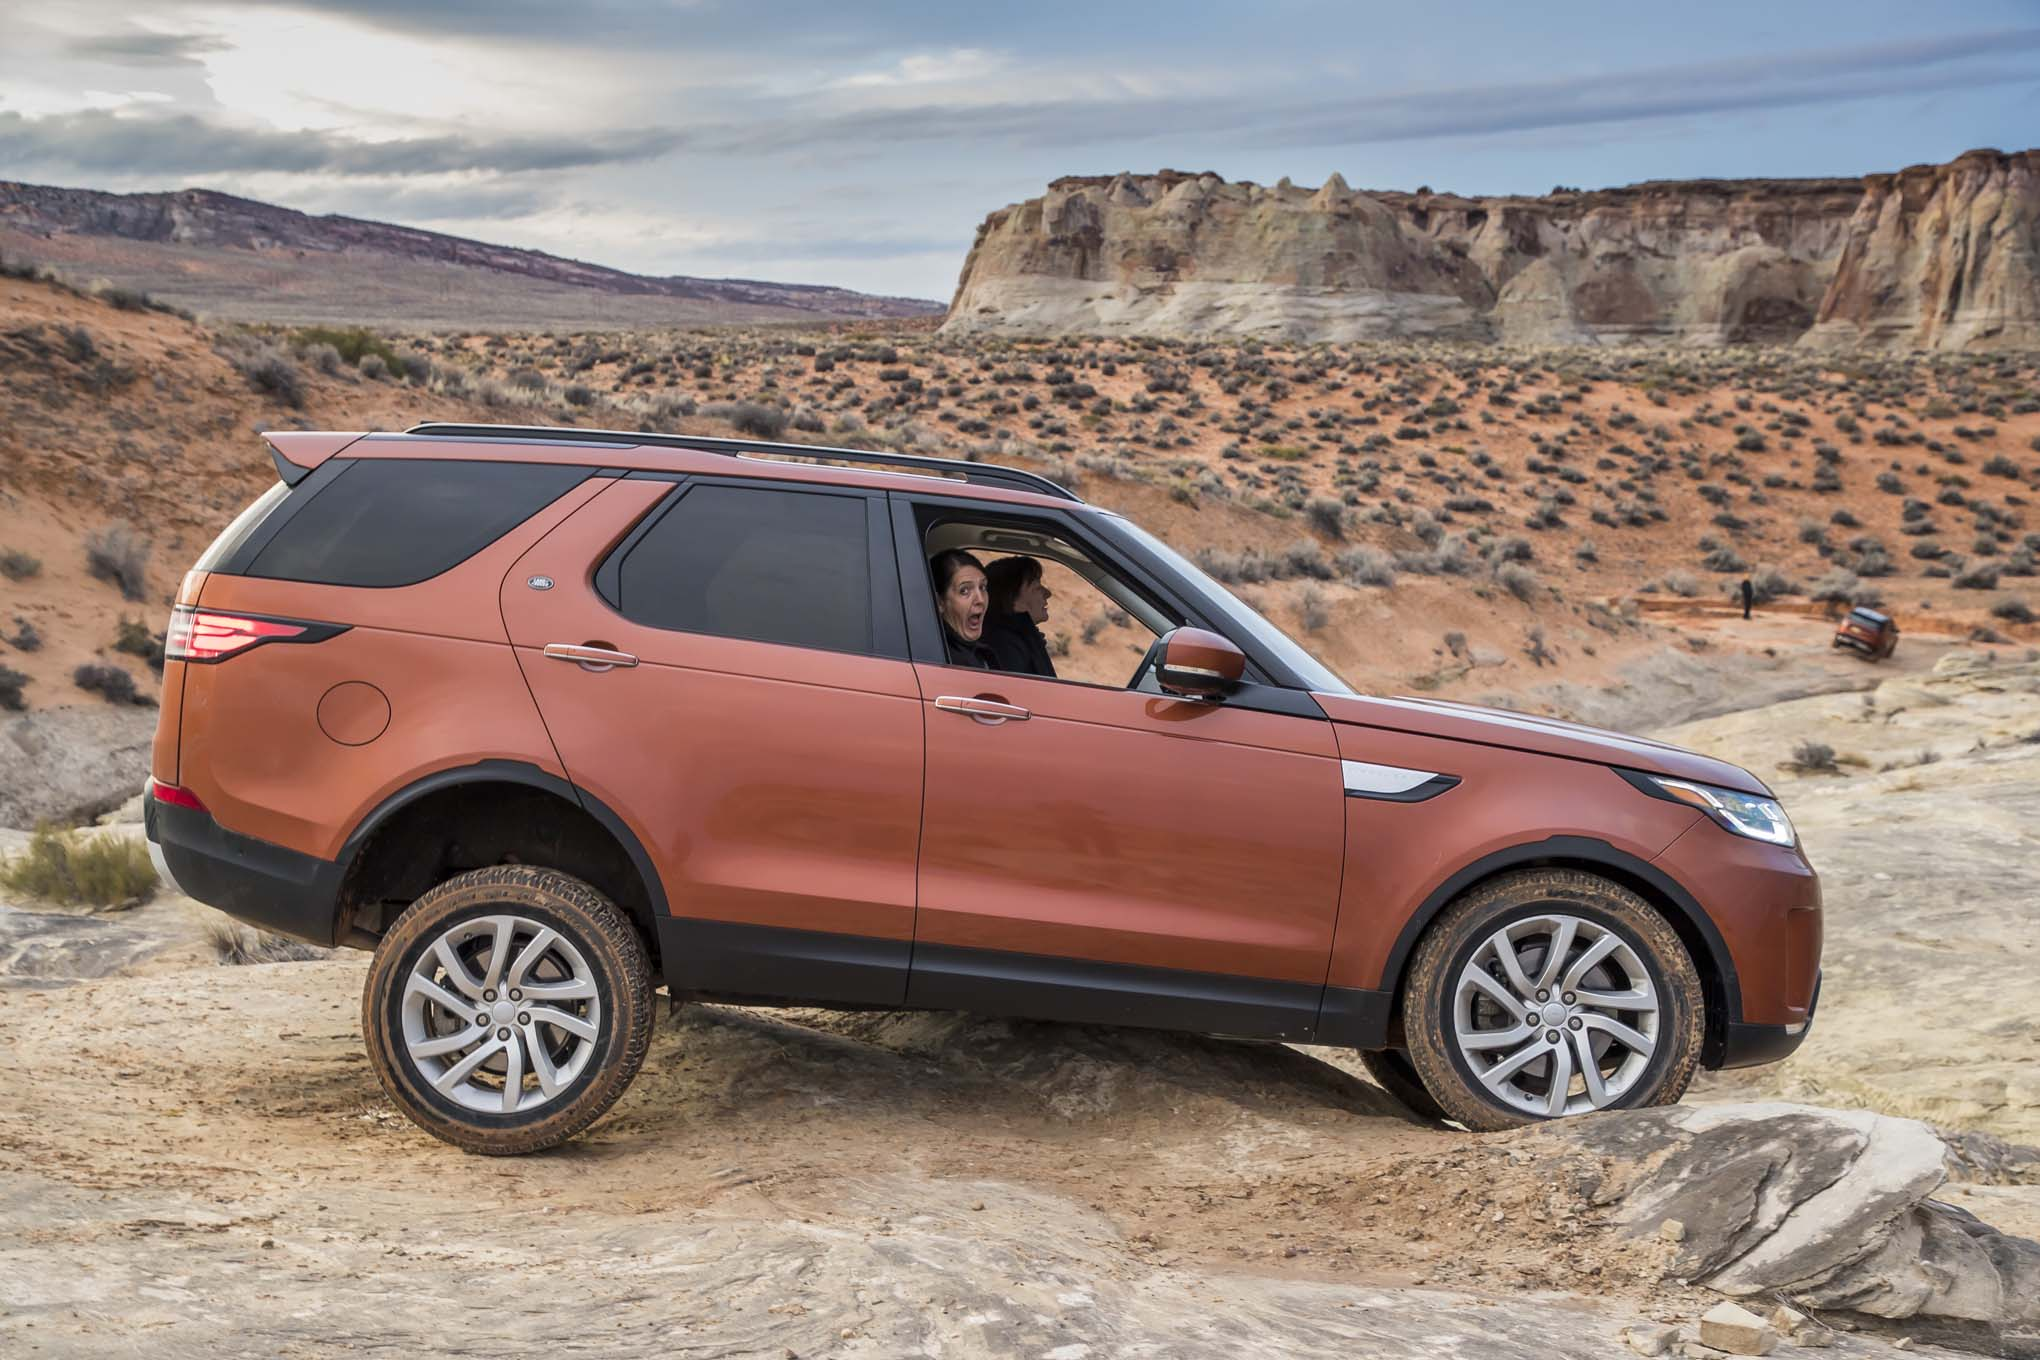 https://st.automobilemag.com/uploads/sites/11/2017/03/2017-Land-Rover-Discovery-off-road-03.jpg